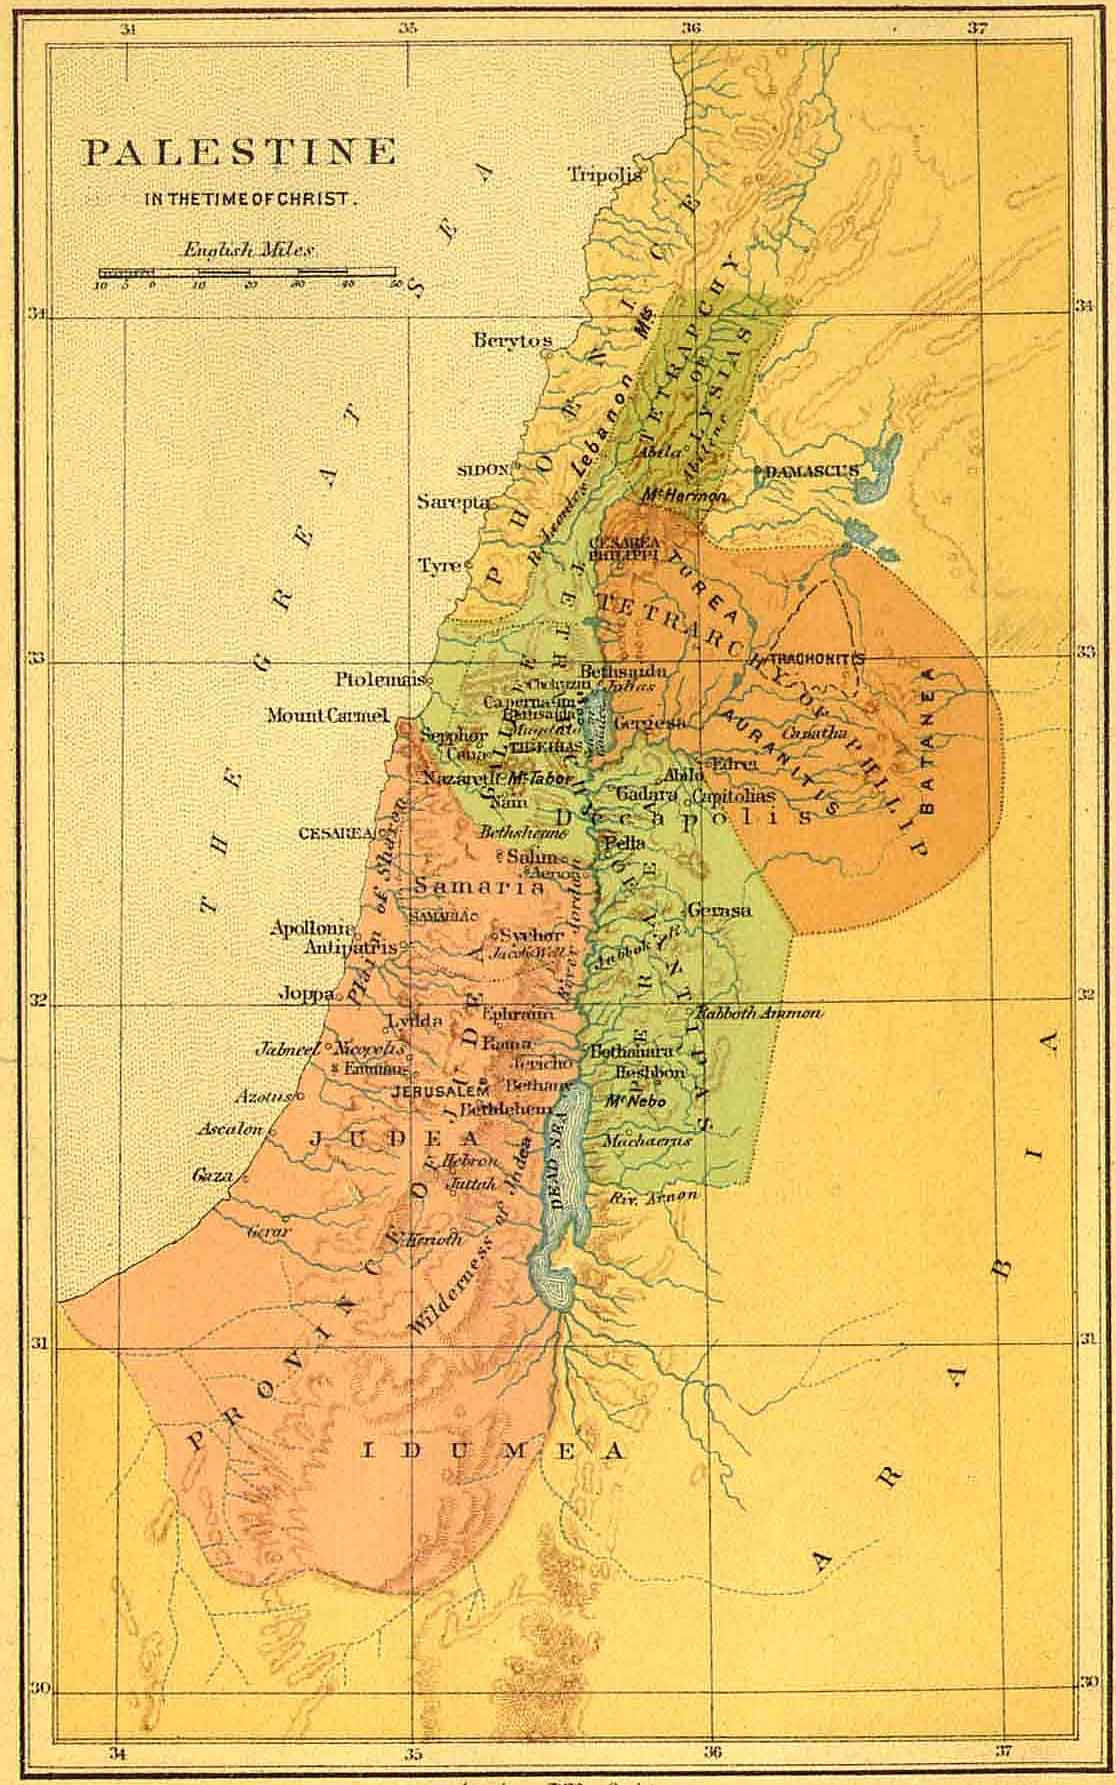 Bible Maps and Atlas | Online Bible World on map during jesus' time, map of euphrates in biblical time, map of egypt and israel in biblical time, map of israel at jesus time, map of the land jesus, map of the world in jesus time, sea of galilee in jesus time, bethlehem during jesus' time, map of egypt in jesus time, map of roman empire in jesus time, map of time zones in us, map of syria in jesus time, map of caesarea philippi in jesus time, map holy land israel, map of nazareth in jesus time, map of mediterranean in jesus time, bible fullness of time, map of jordan in jesus time, map of judea in jesus time, palestine in christ's time,